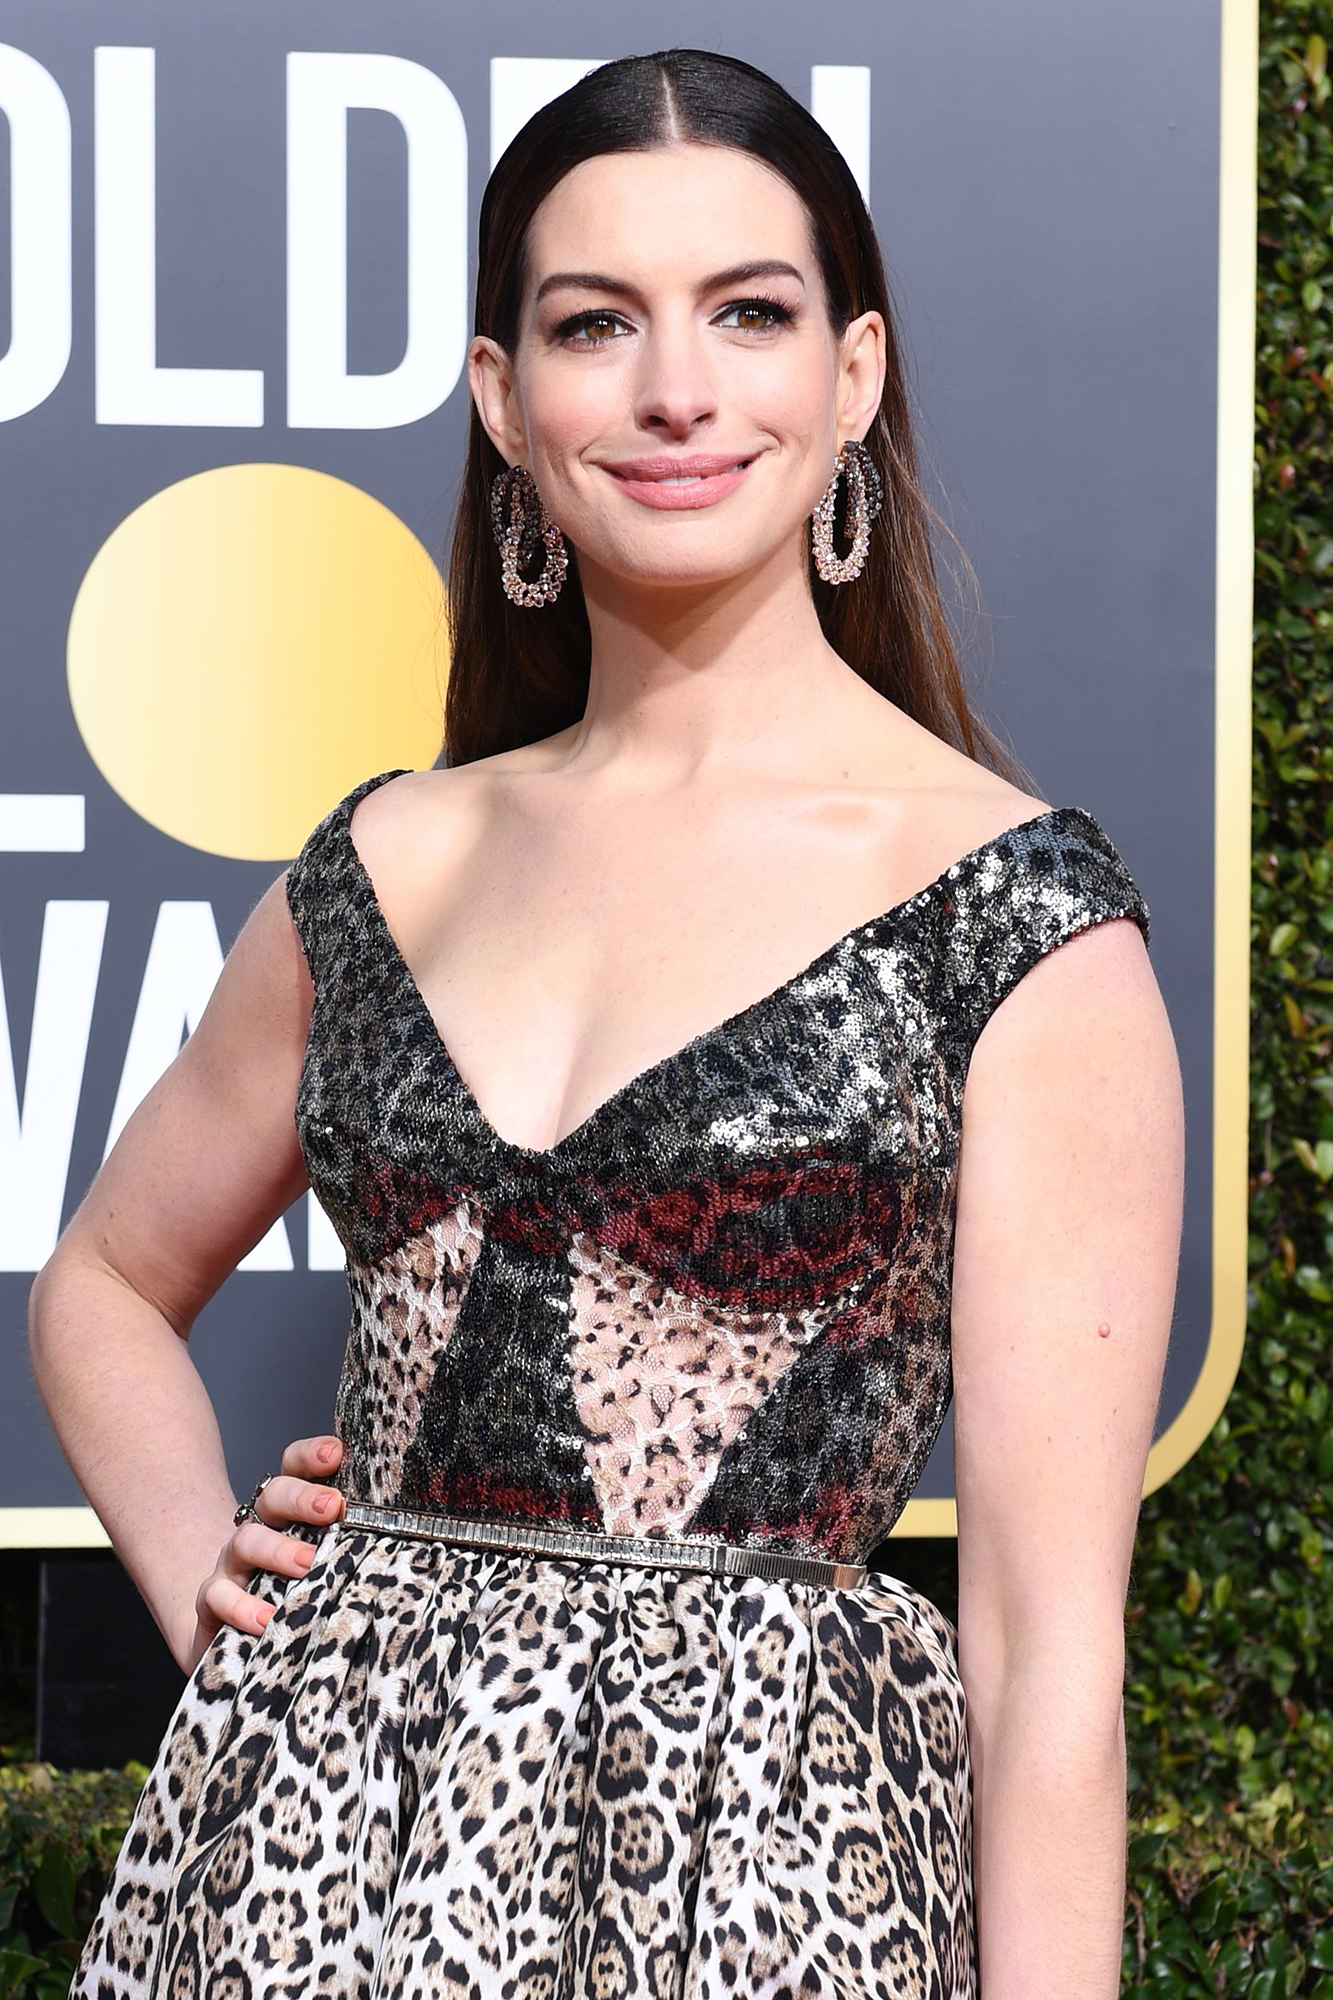 Stars With Anxiety: Celebs Open Up About Their Struggles and What Helps Them - Anne Hathaway arrives for the 76th annual Golden Globe Awards on January 6, 2019, at the Beverly Hilton hotel in Beverly Hills, California.